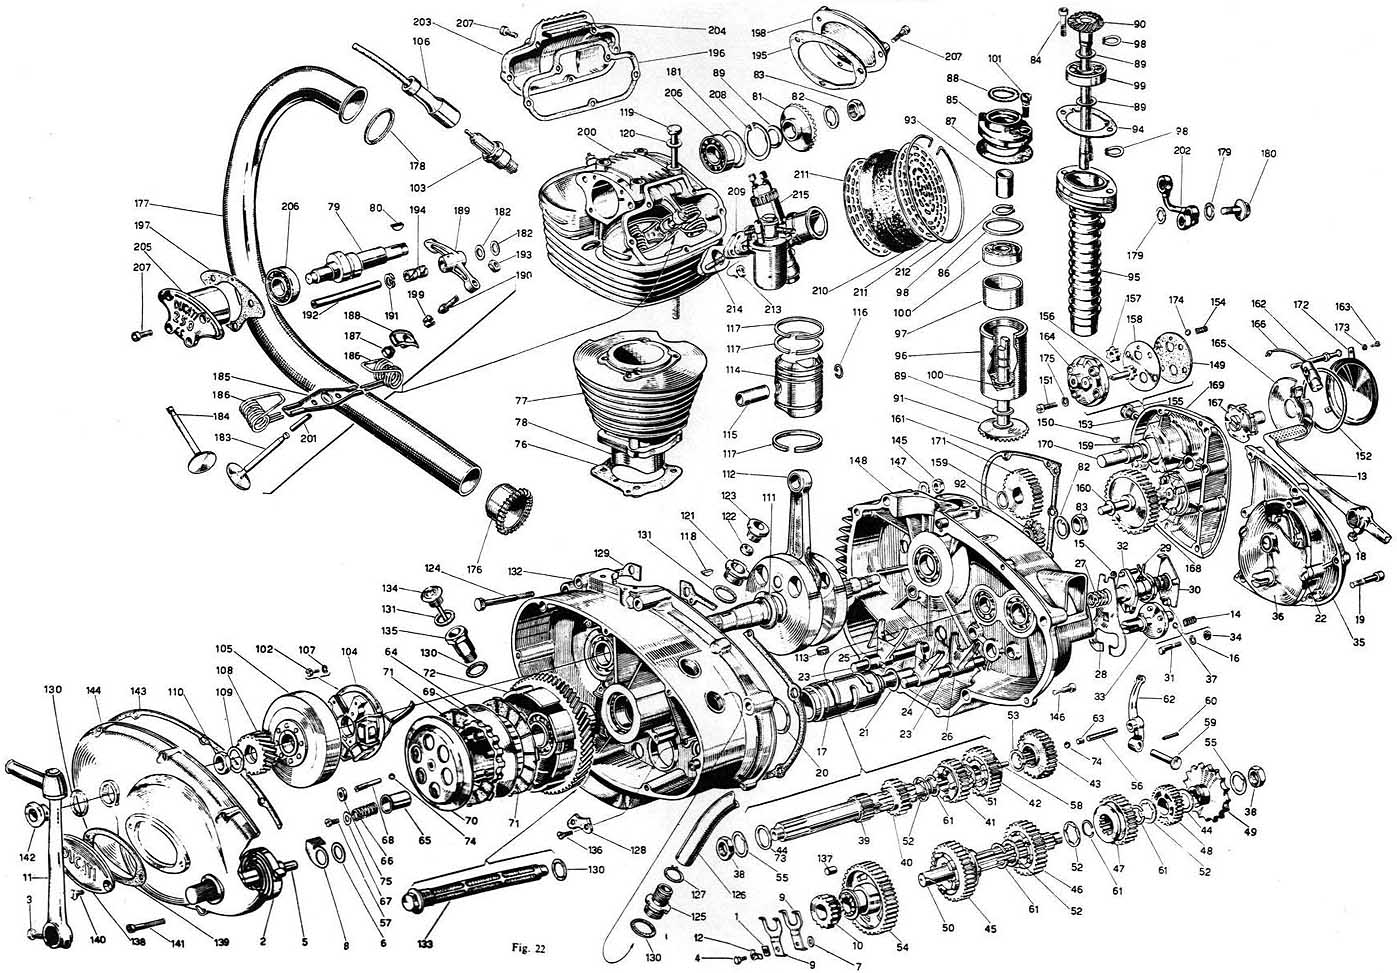 Barking Mad Speed Shop: These are great diagrams